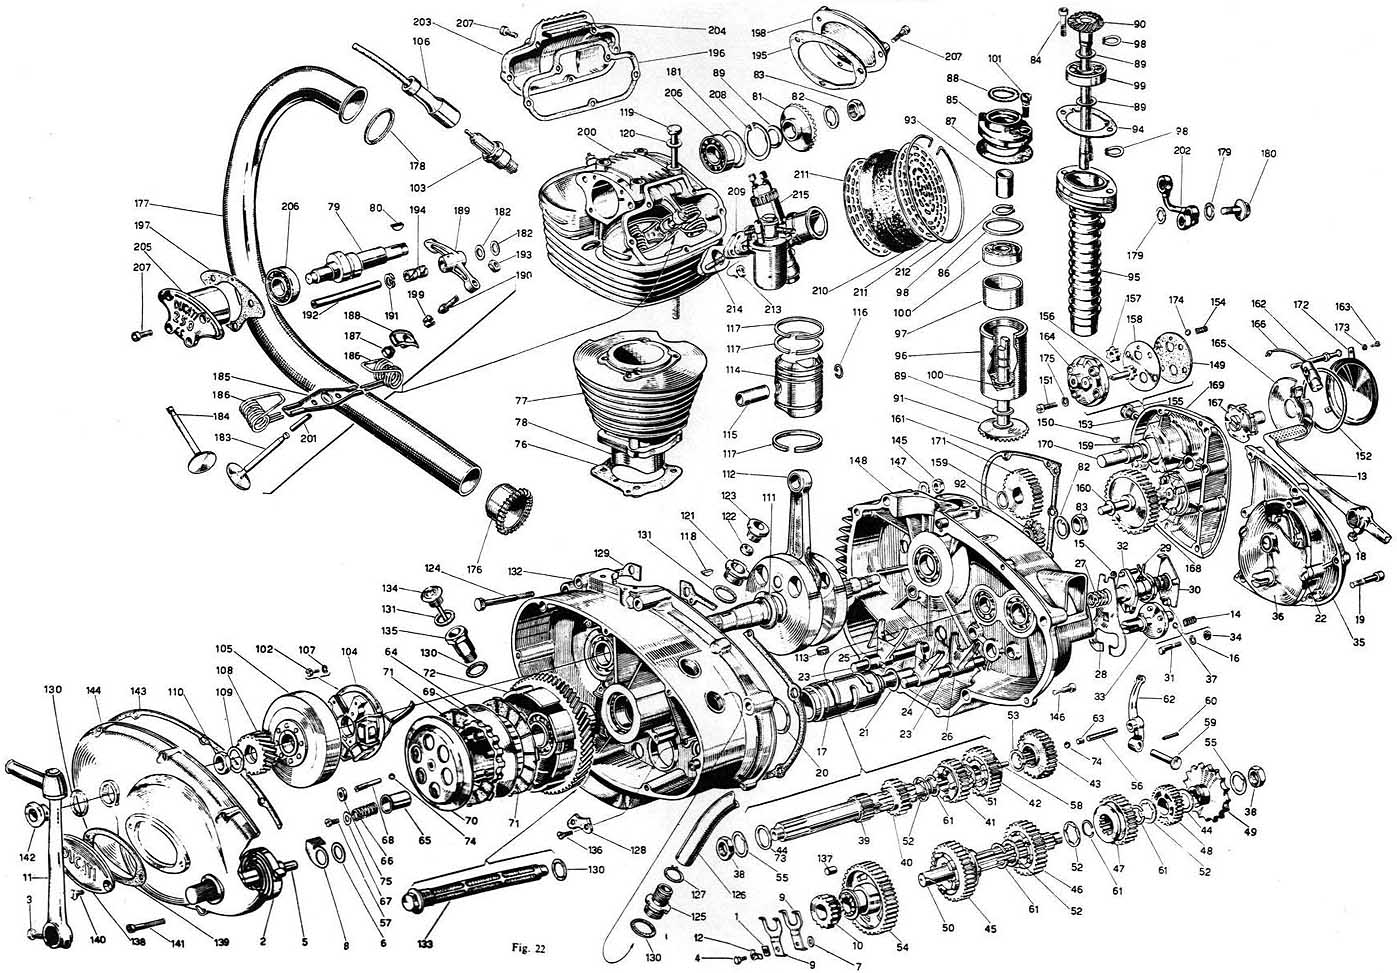 Barking Mad Speed Shop: These are great diagrams